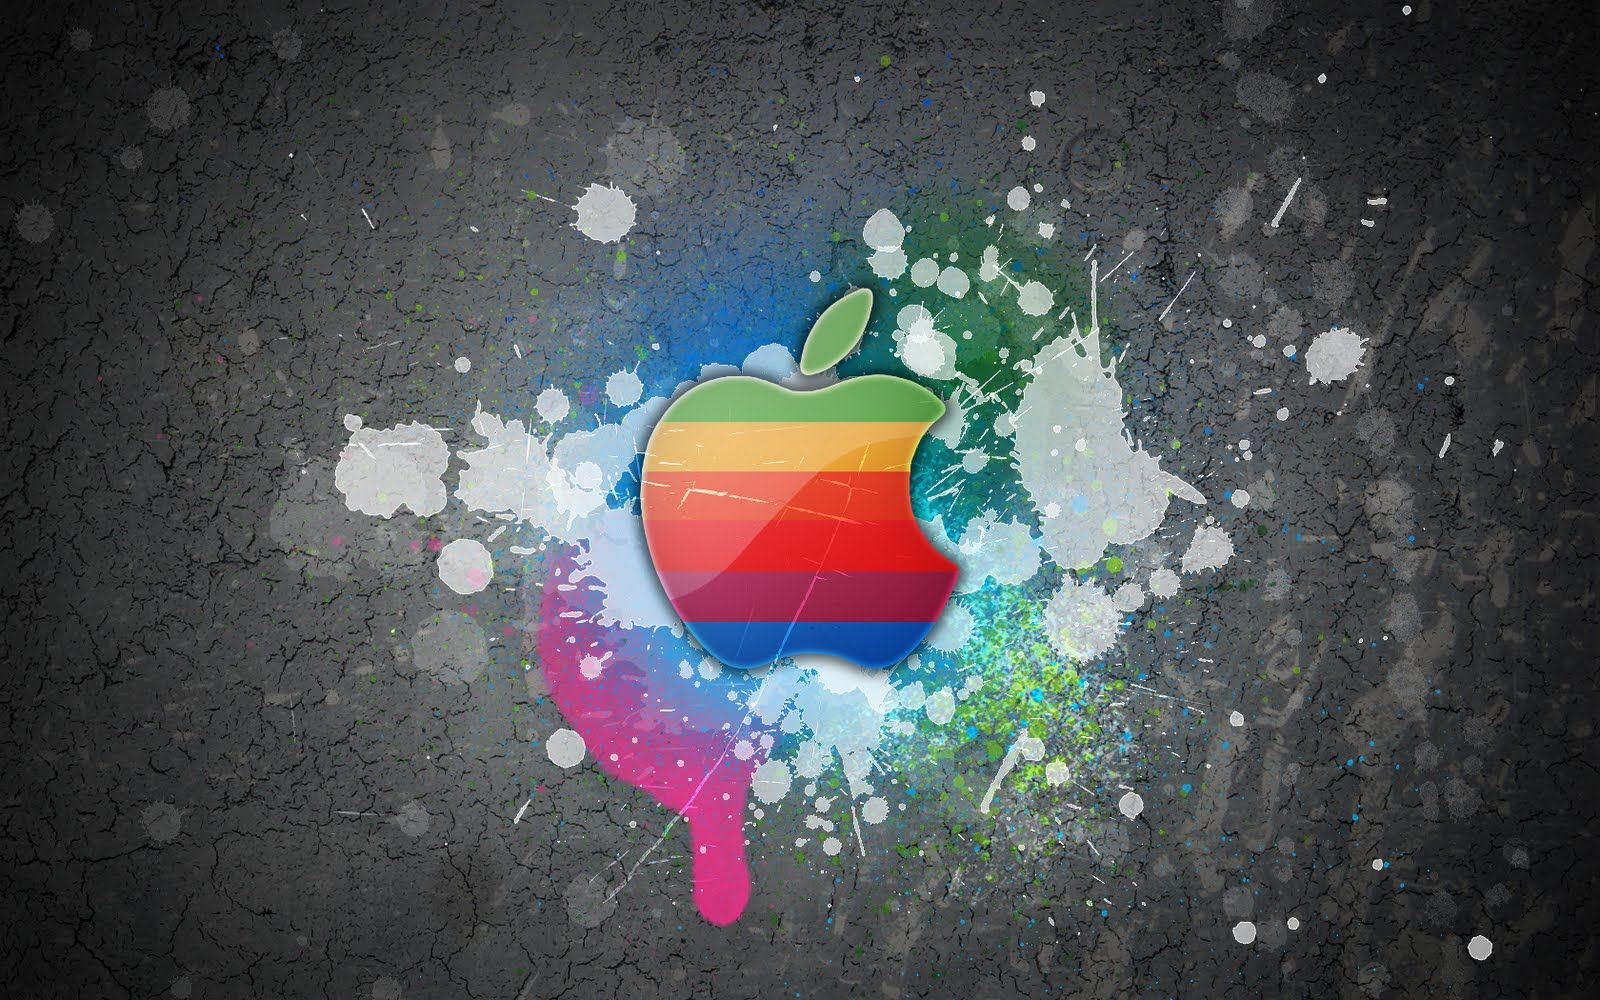 cool apple logos hd. apple logo dark wide d wallpapers pinterest cool logos hd l